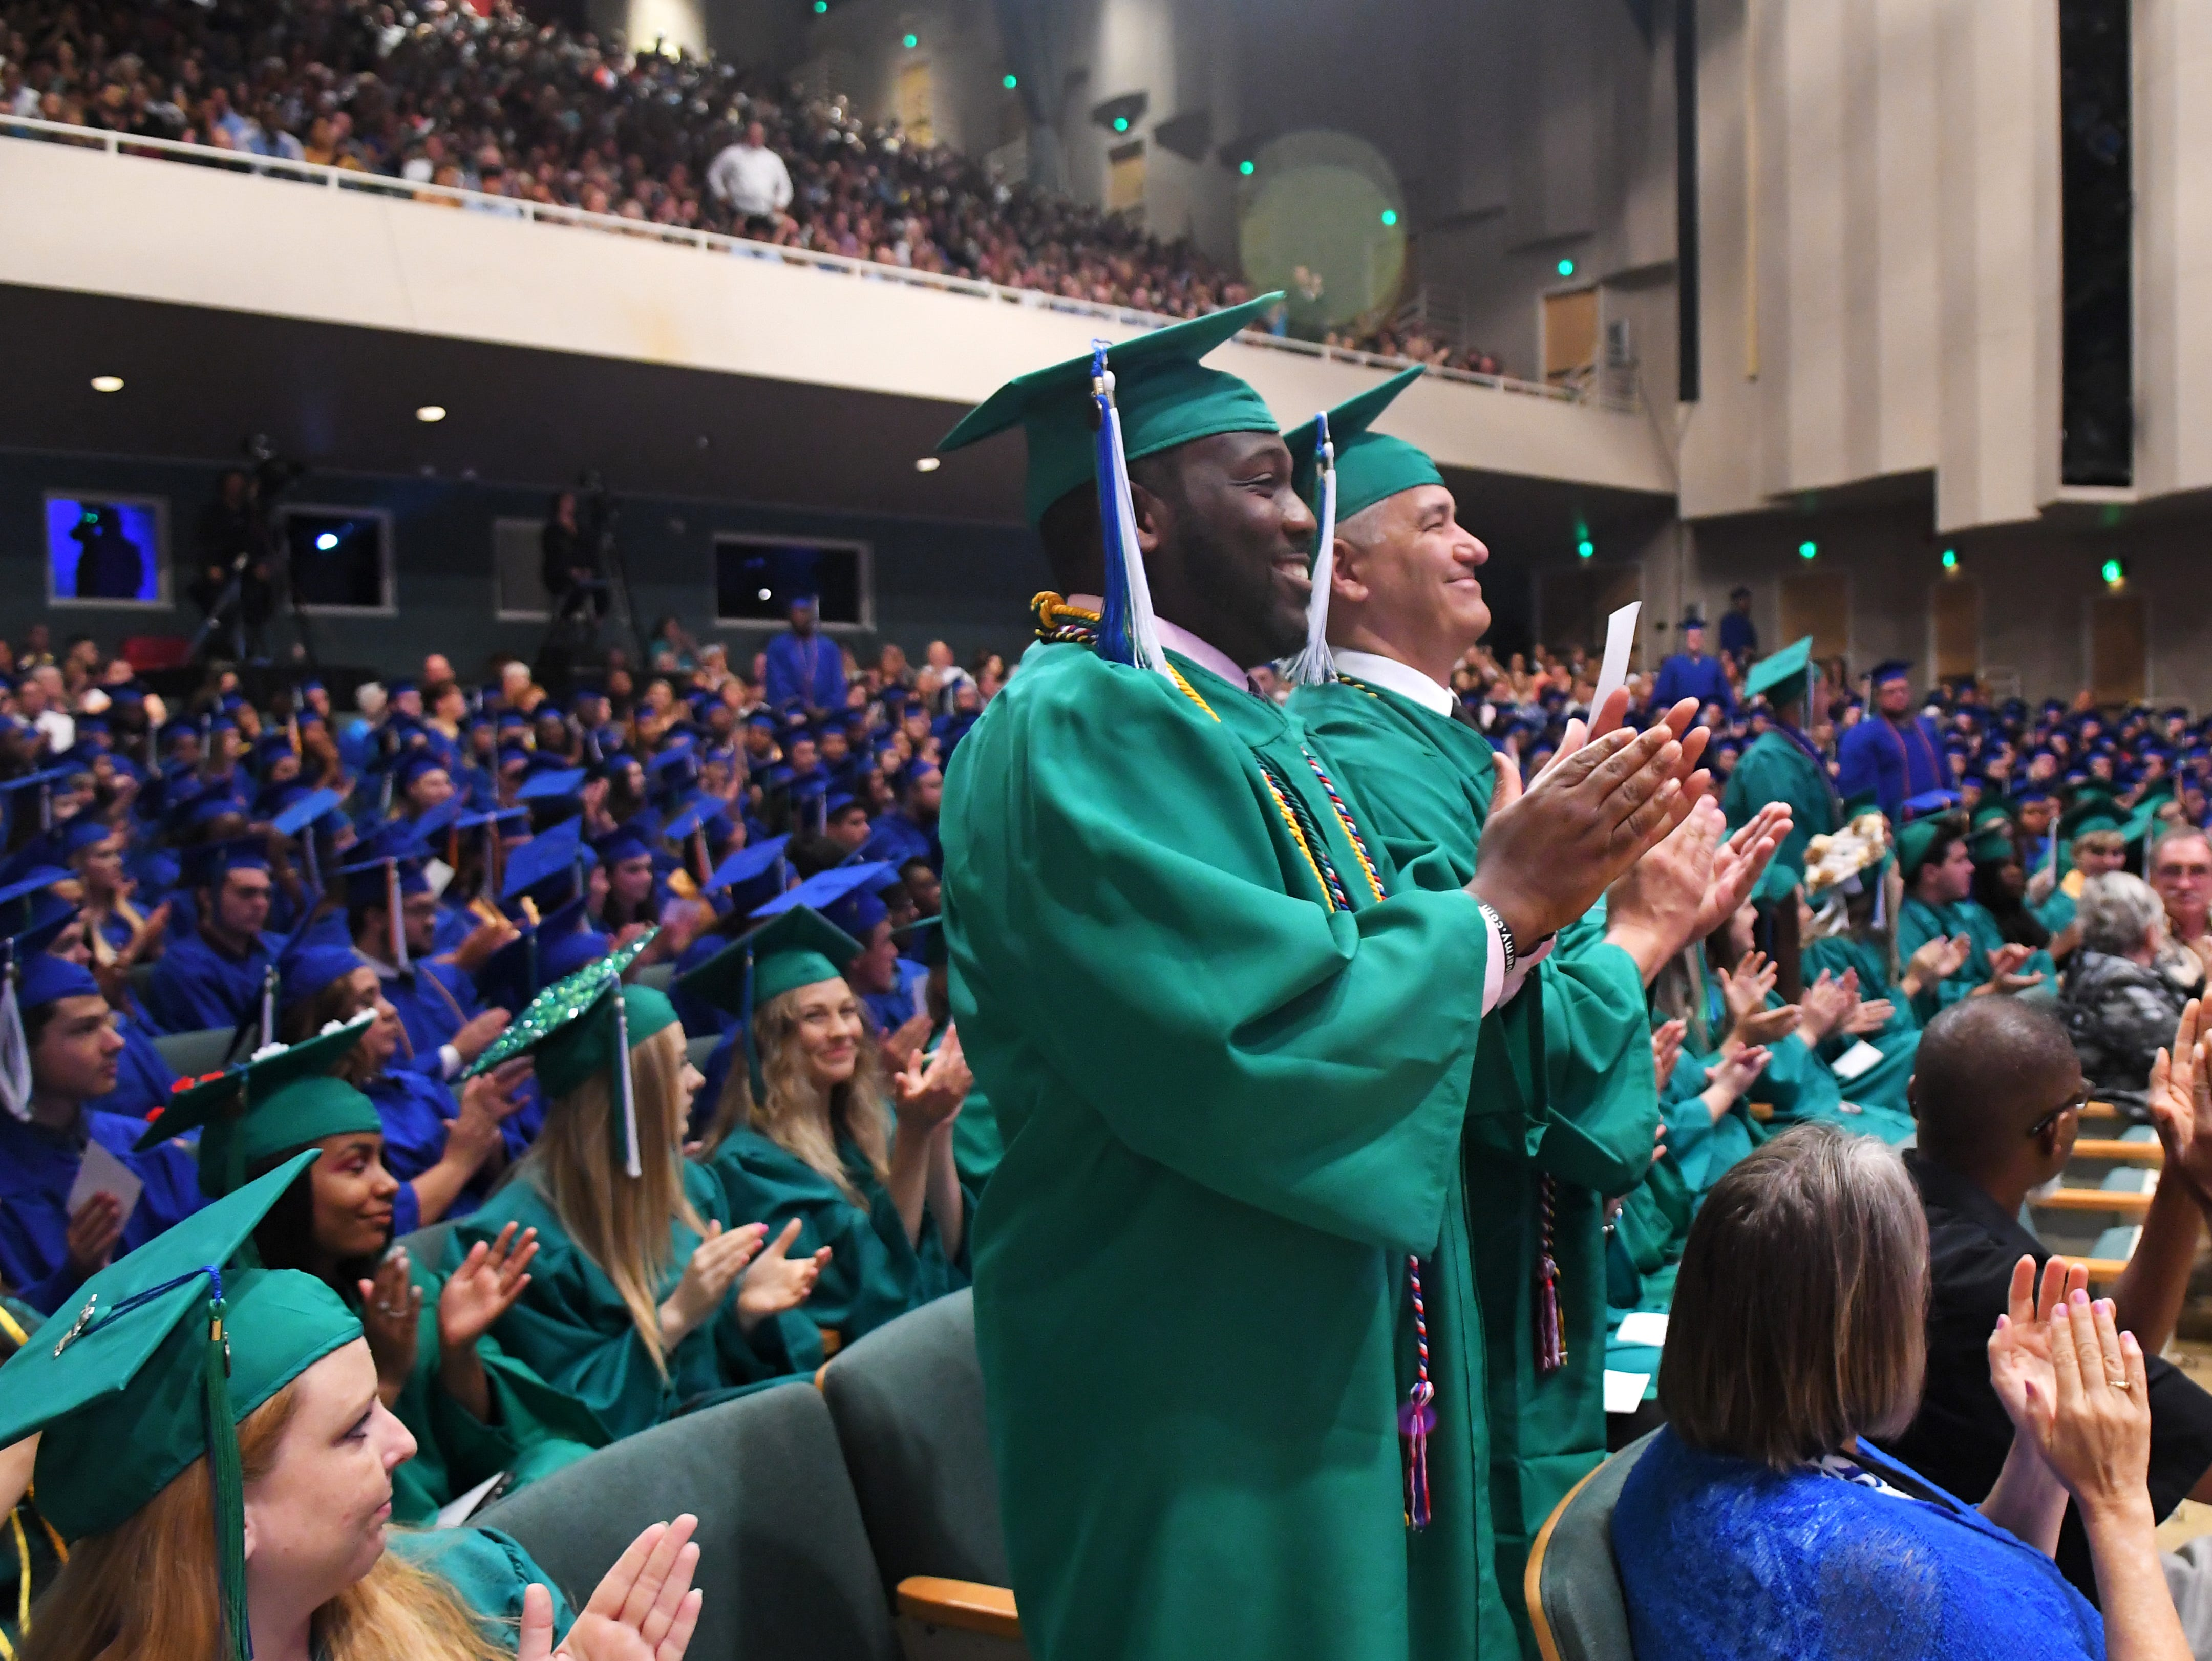 Graduates who have served in the military were asked to stand, to the applause of the crowd. Graduates at the noon Eastern Florida State College 2019 Spring Commencement at the Melbourne campus. An additional commencement was held at 3:00 p.m.